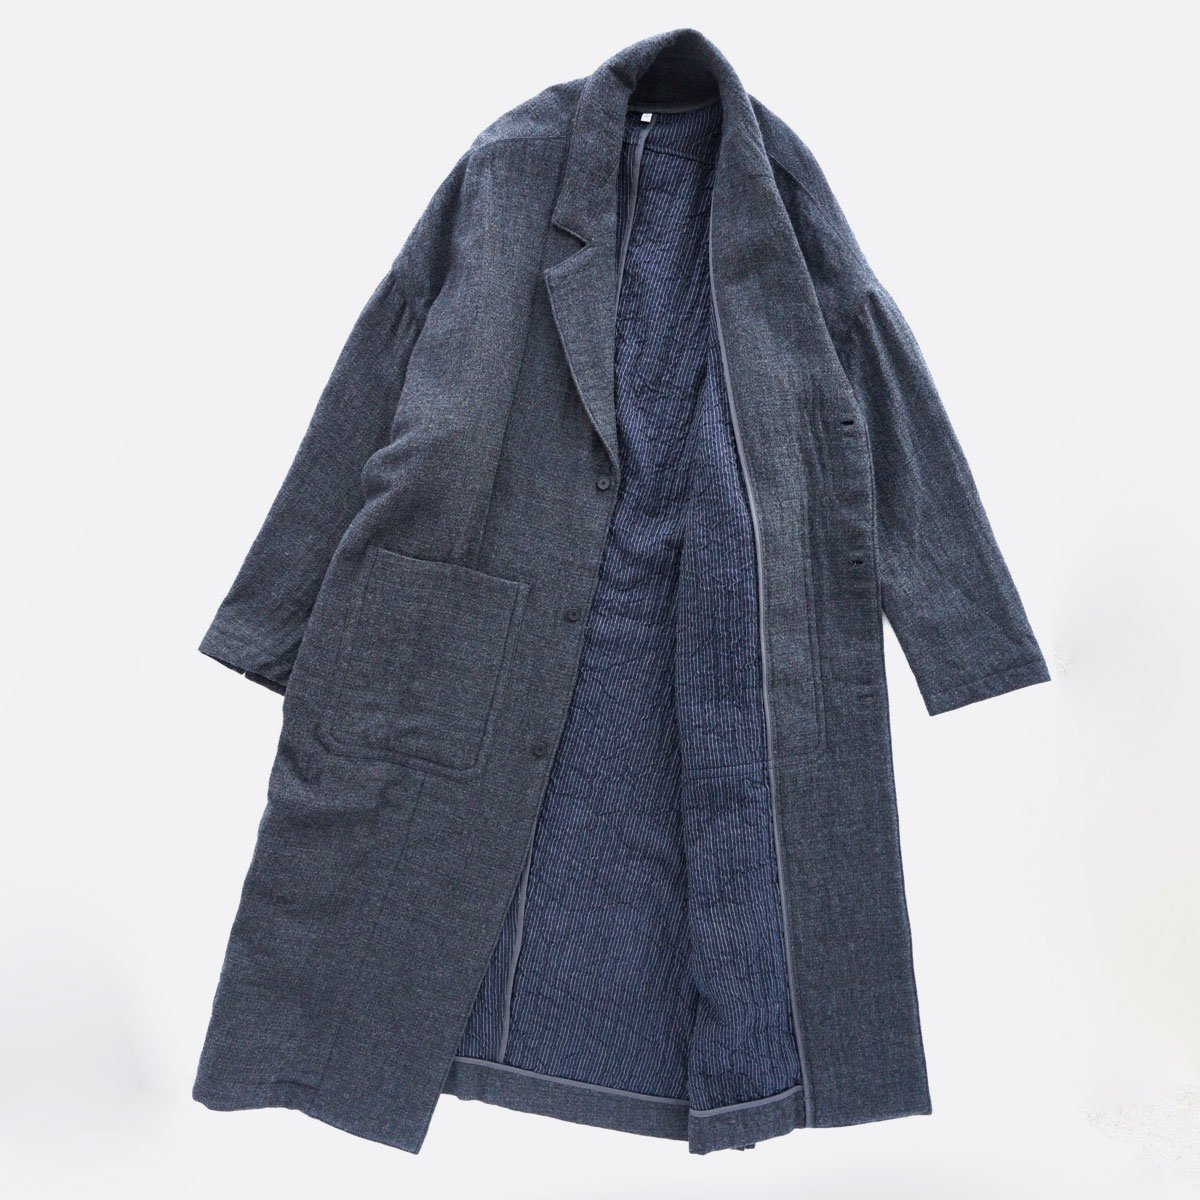 FIRMUM WORSTED WOOL & COTTON DOBBY DOUBLE CLOTH COAT (GREY&BLACK)4